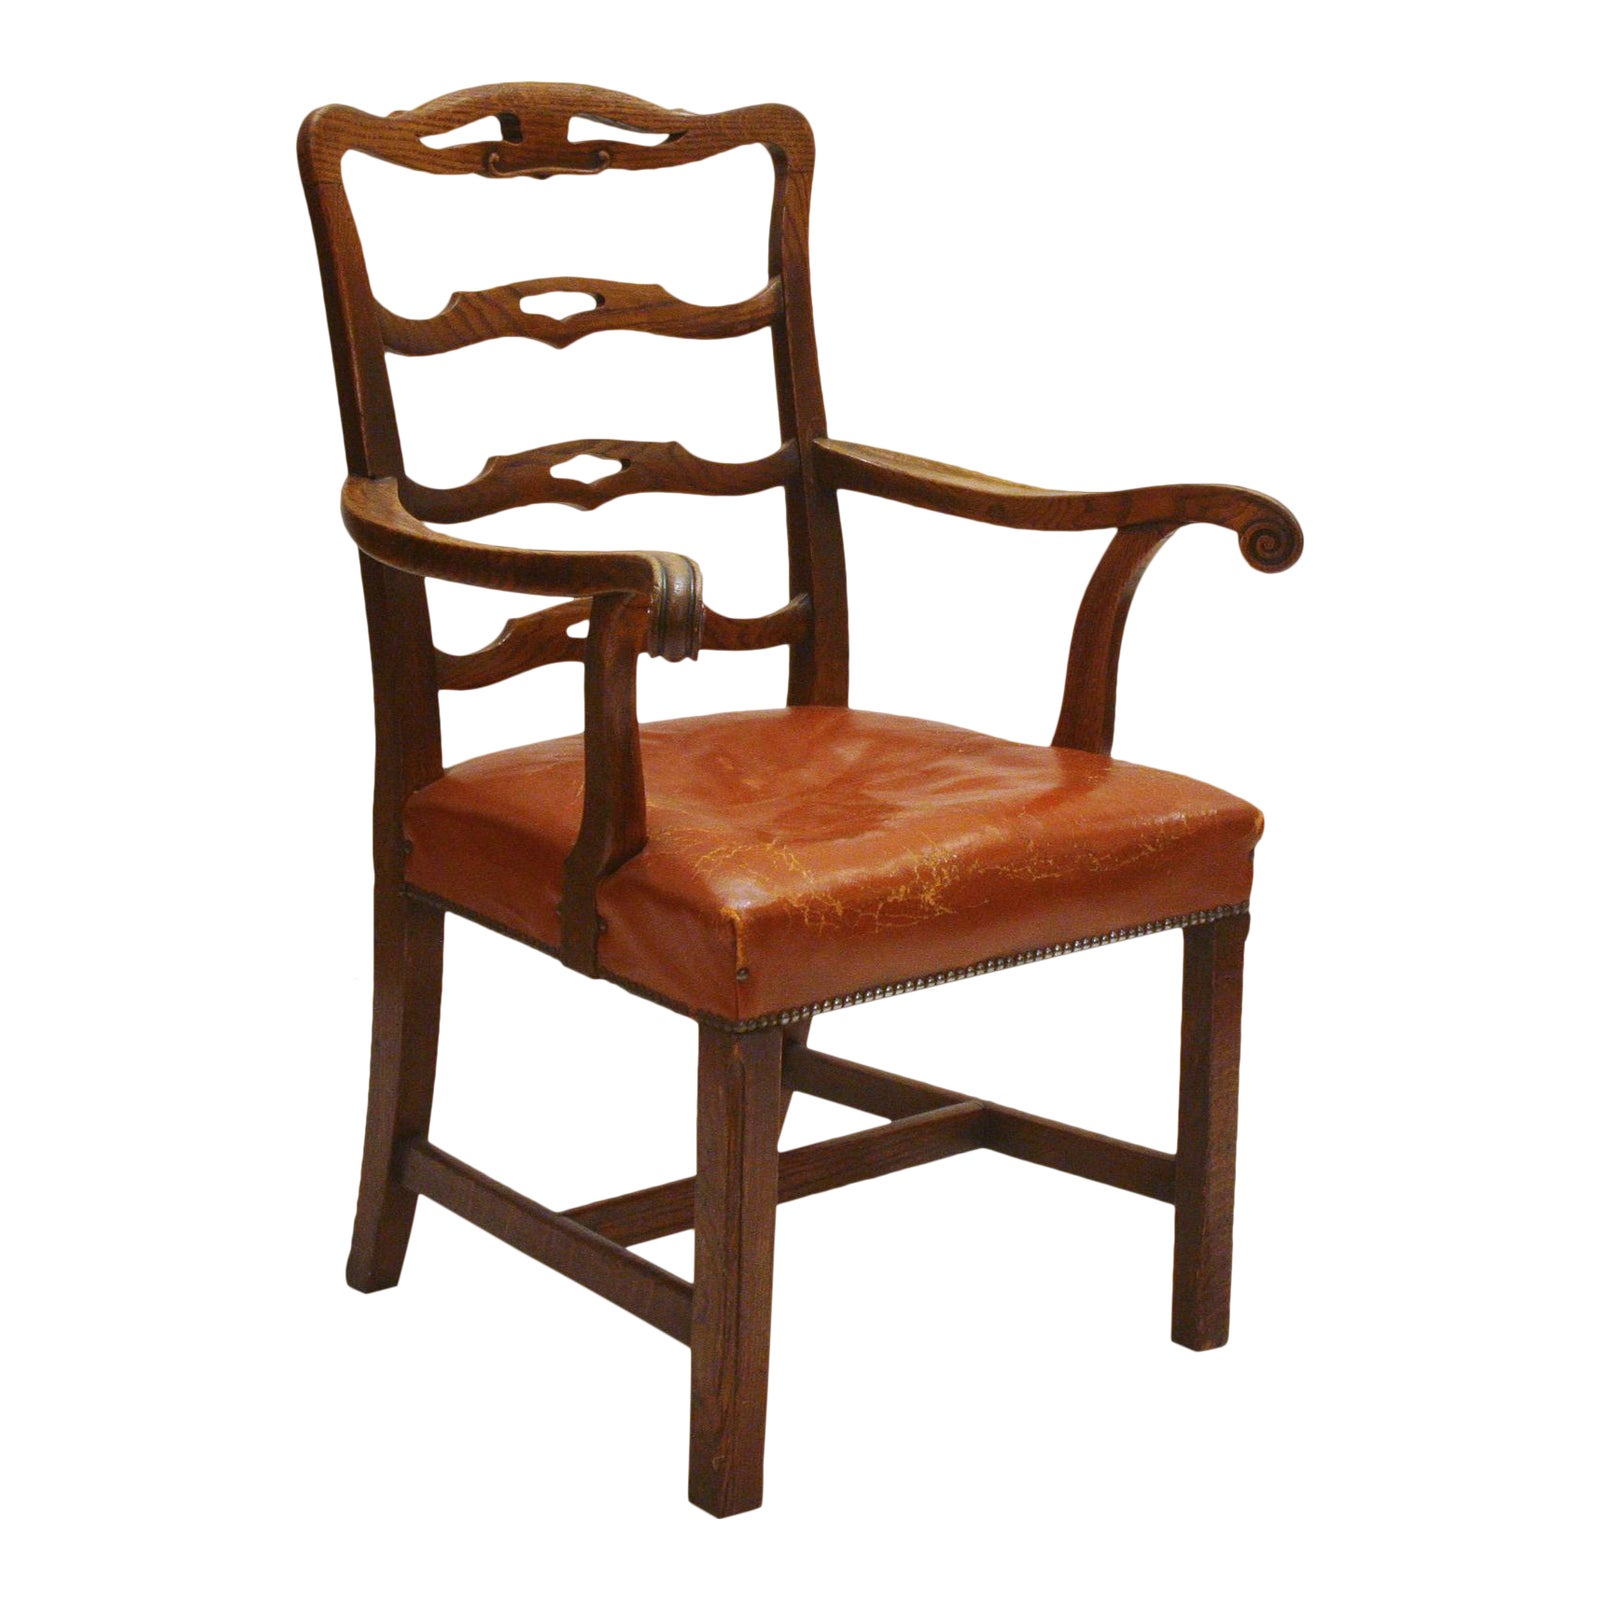 Fine English Host Chair Ladderback Arm Chair With